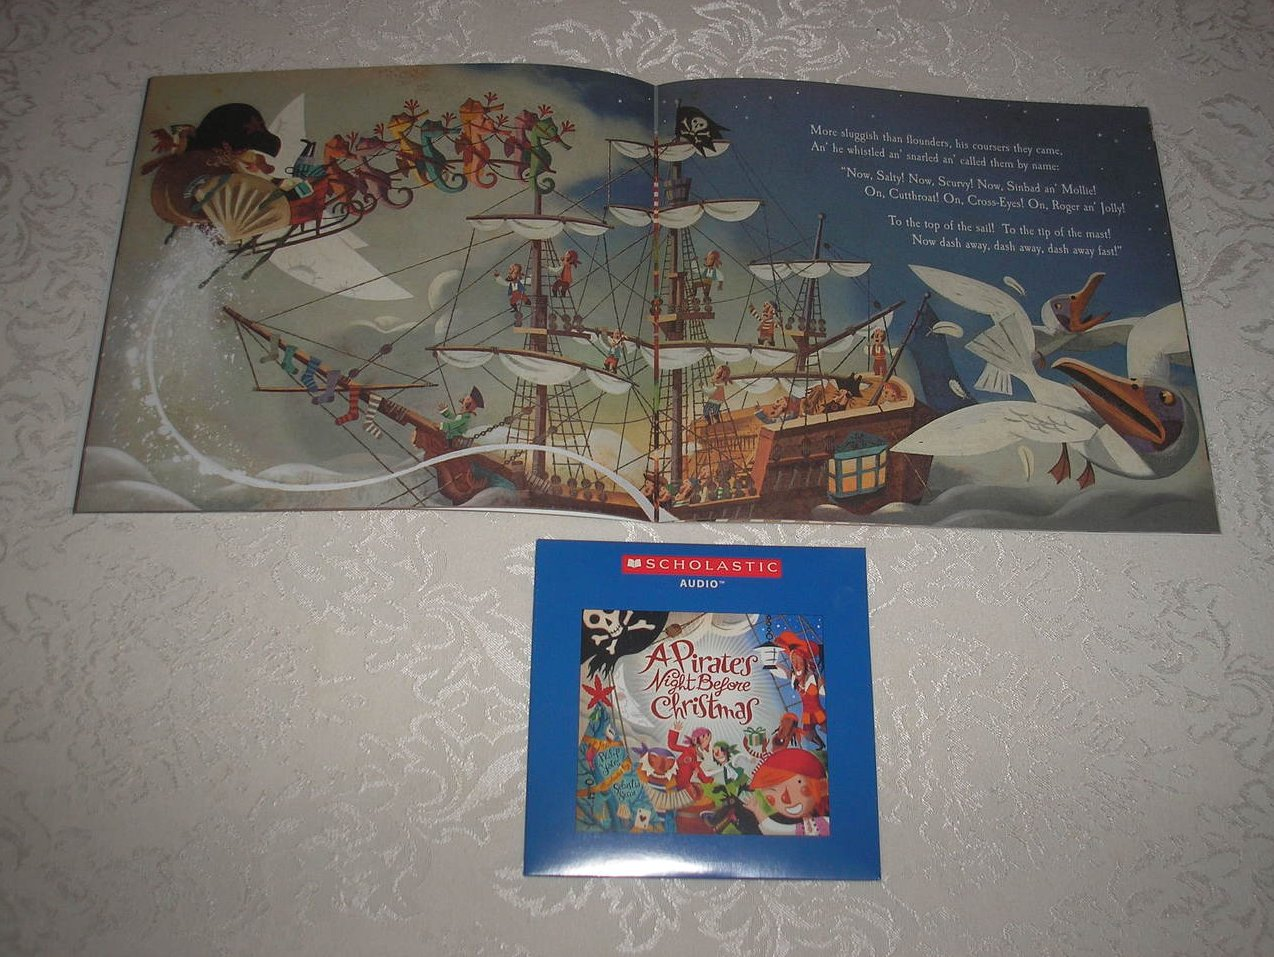 Image 2 of A Pirate's Night Before Christmas brand new sc and sealed Audio CD Philip Yates